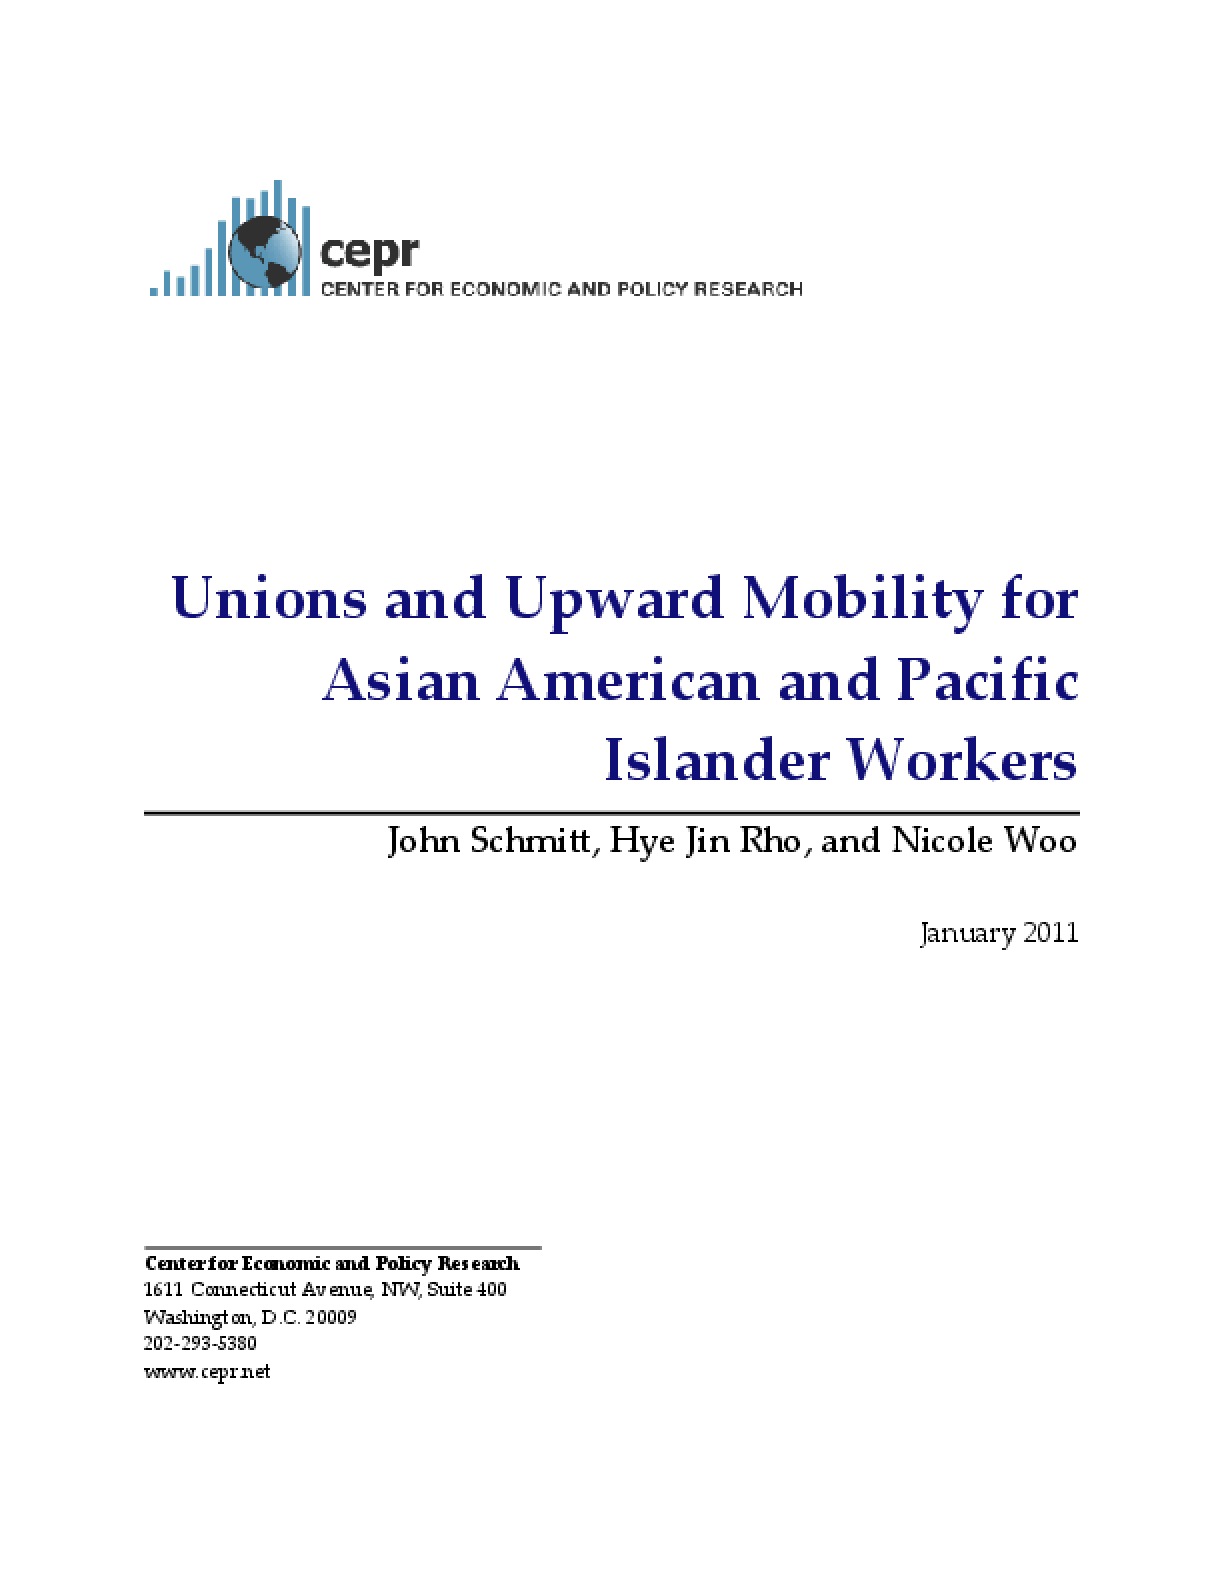 Unions and Upward Mobility for Asian American and Pacific Islander Workers